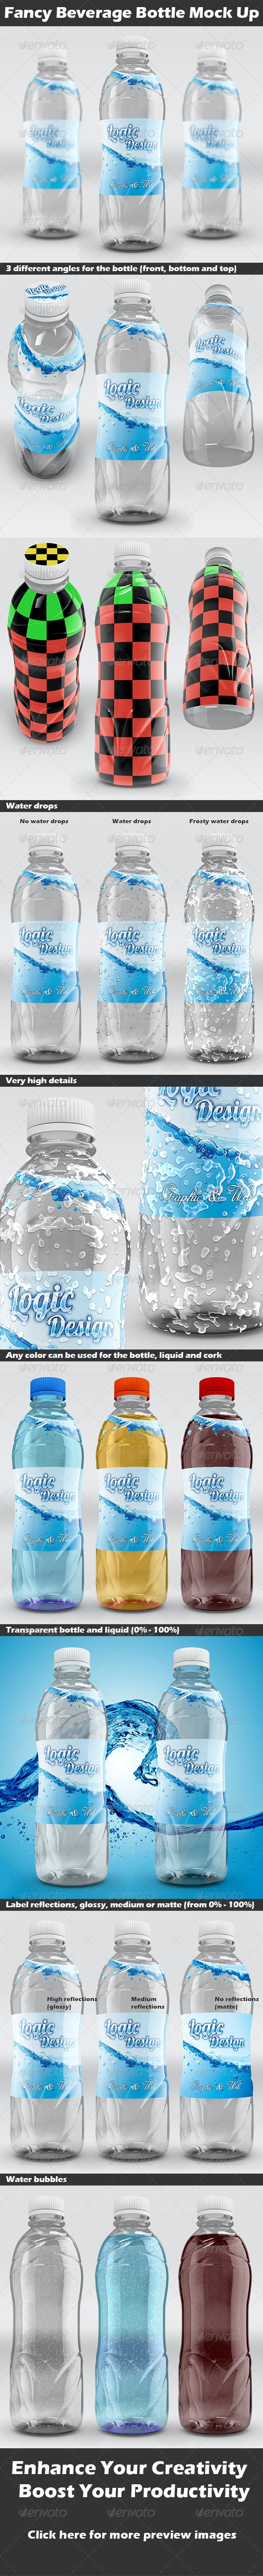 Fancy Beverage Bottle Mock Up - Food and Drink Packaging